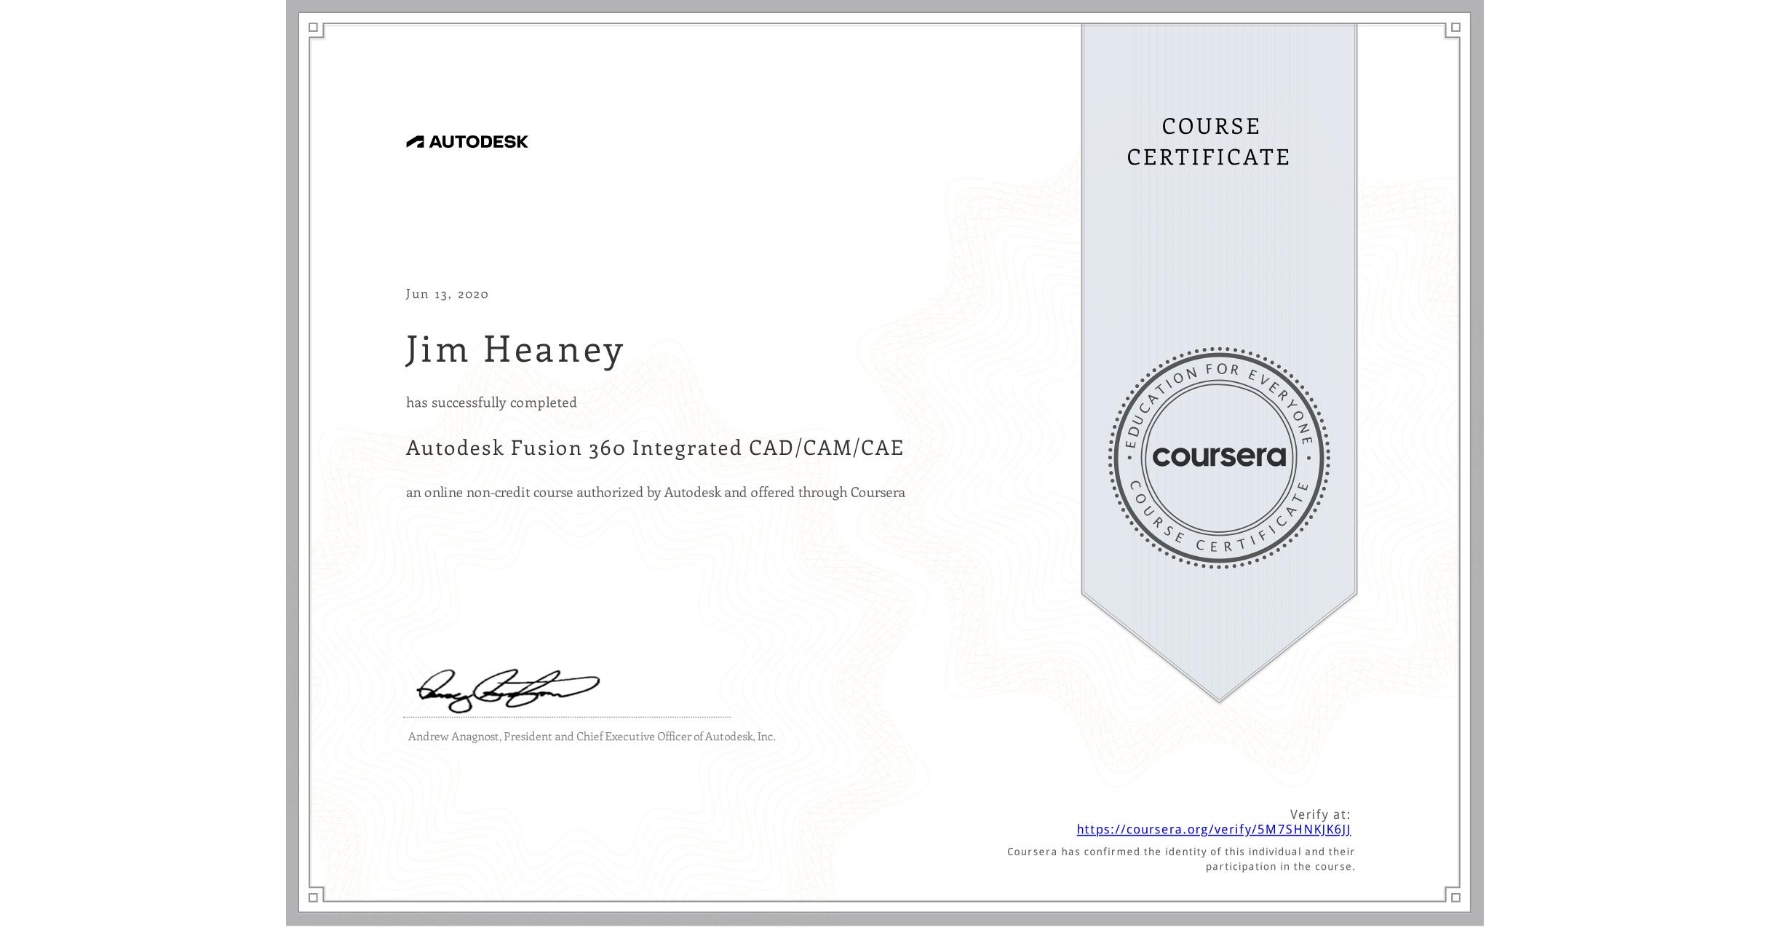 View certificate for Jim Heaney, Autodesk Fusion 360 Integrated CAD/CAM/CAE, an online non-credit course authorized by Autodesk and offered through Coursera